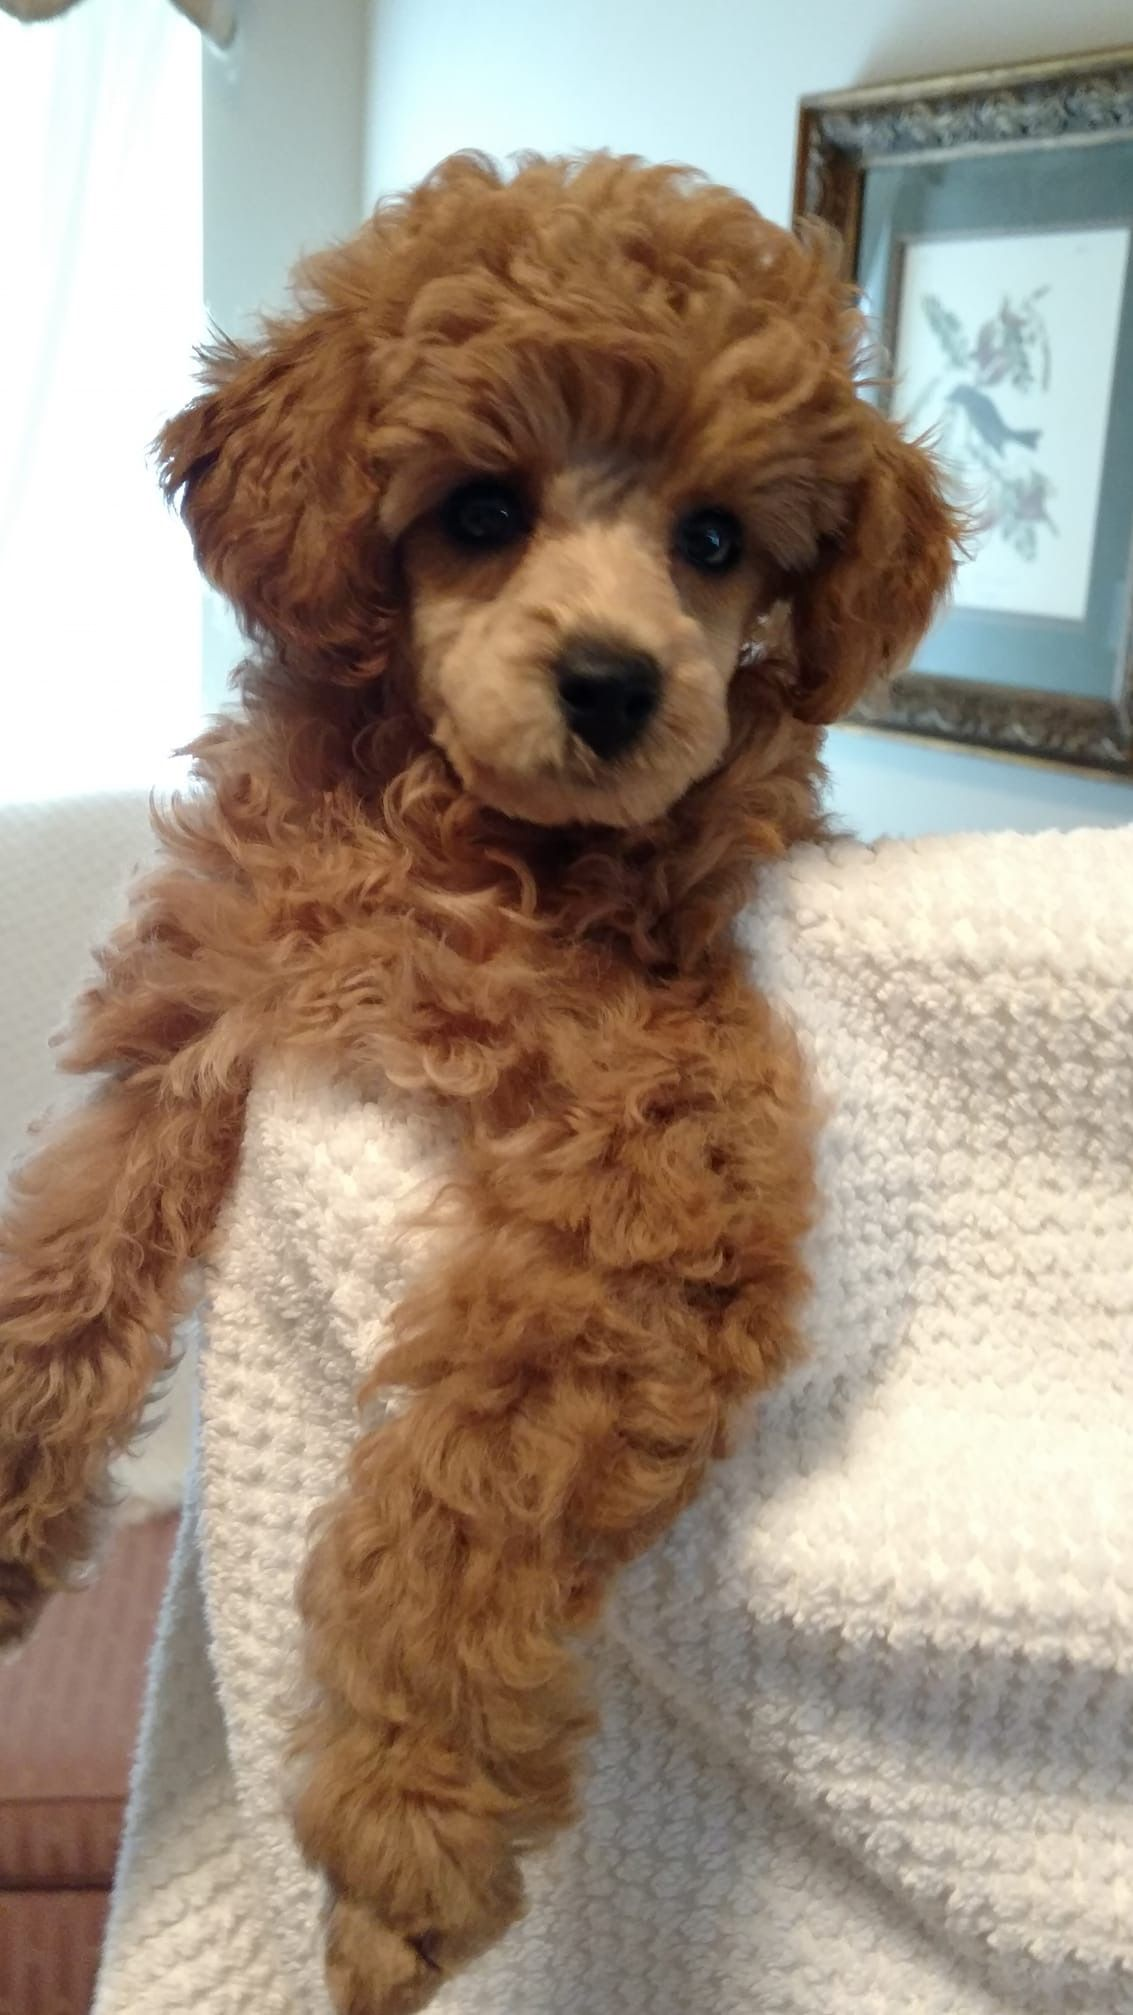 Pin by Starlingale Shelton on Oodles of poodles Dogs